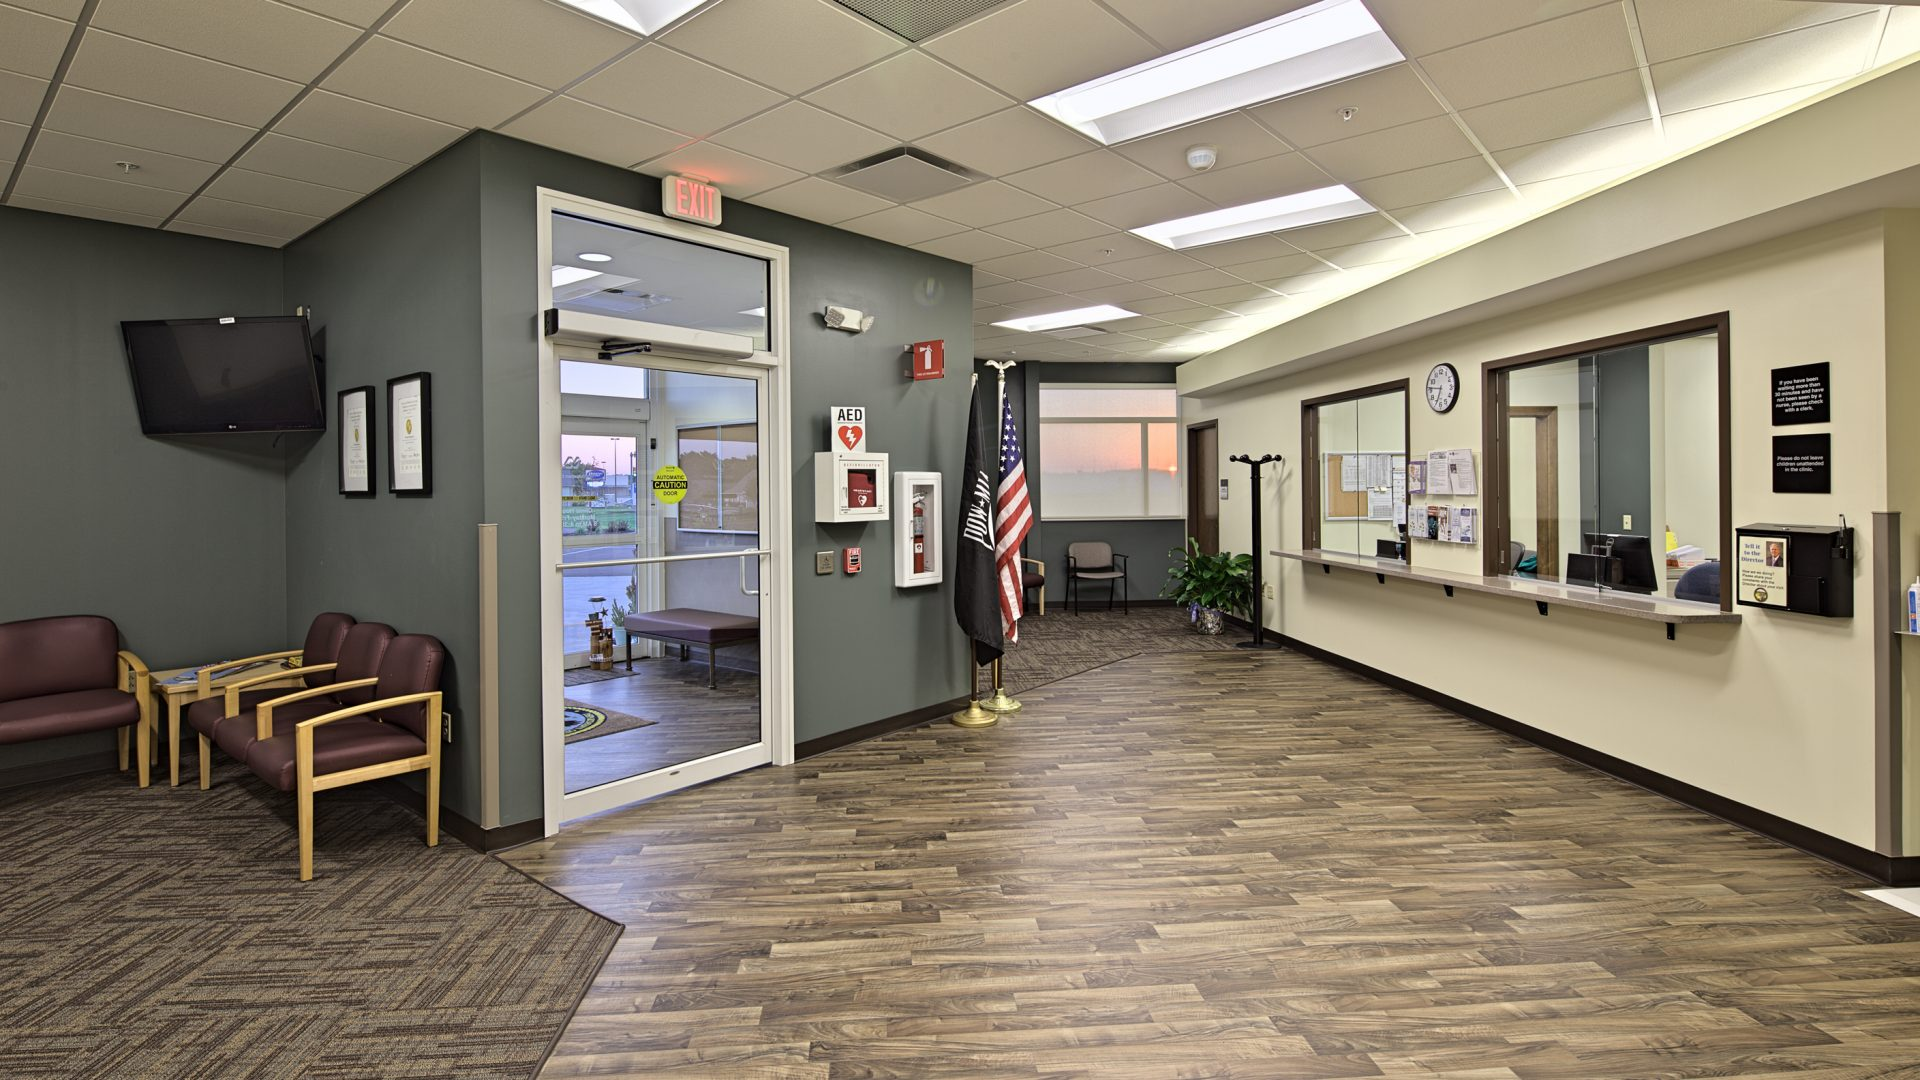 entrance and waiting lobby of the Verterans Affairs Community Outpatient Clinic